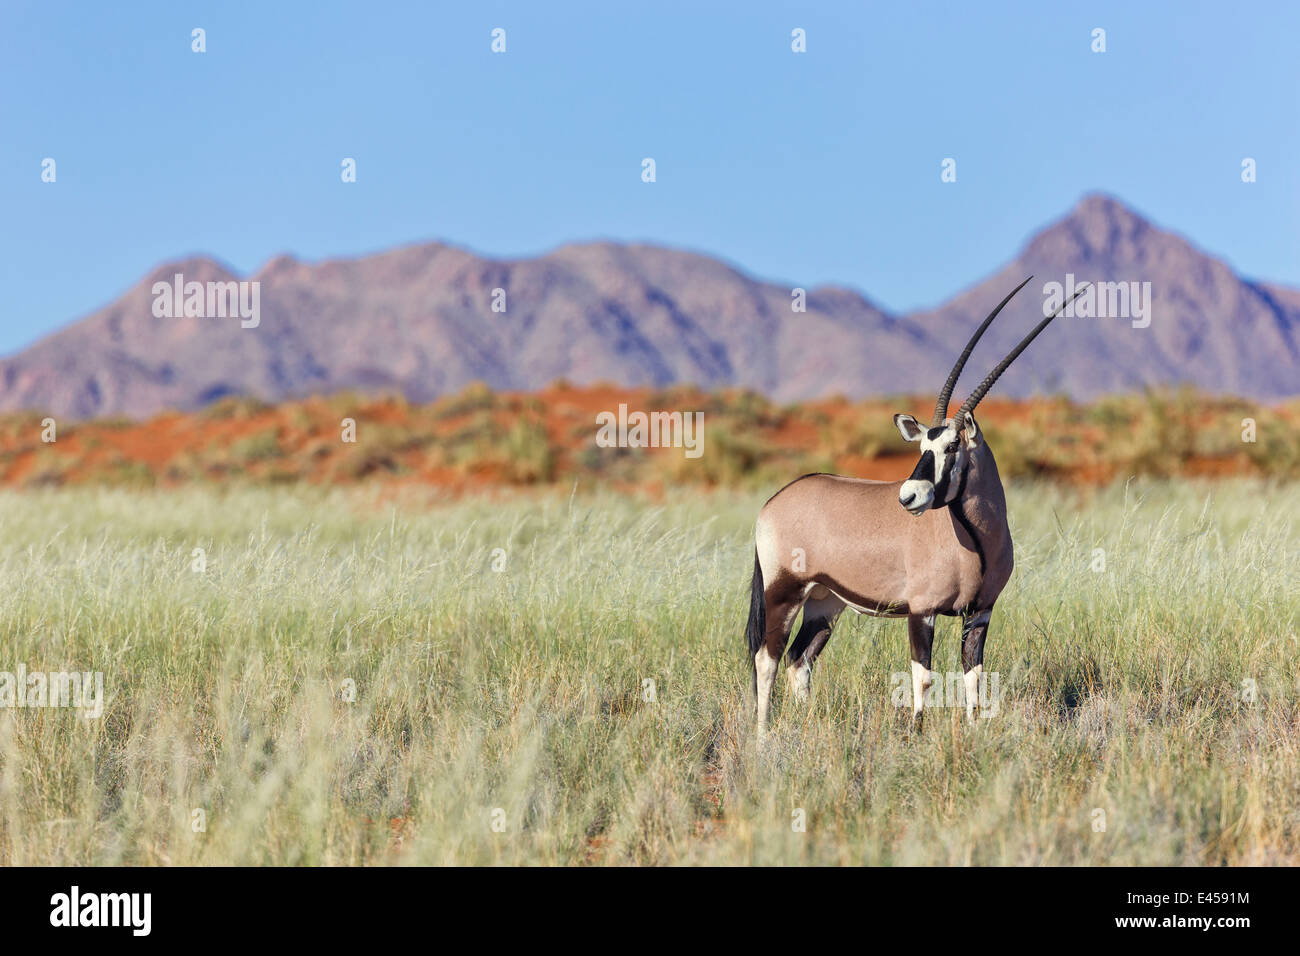 Gemsbok (Oryx gazella) Photo Stock